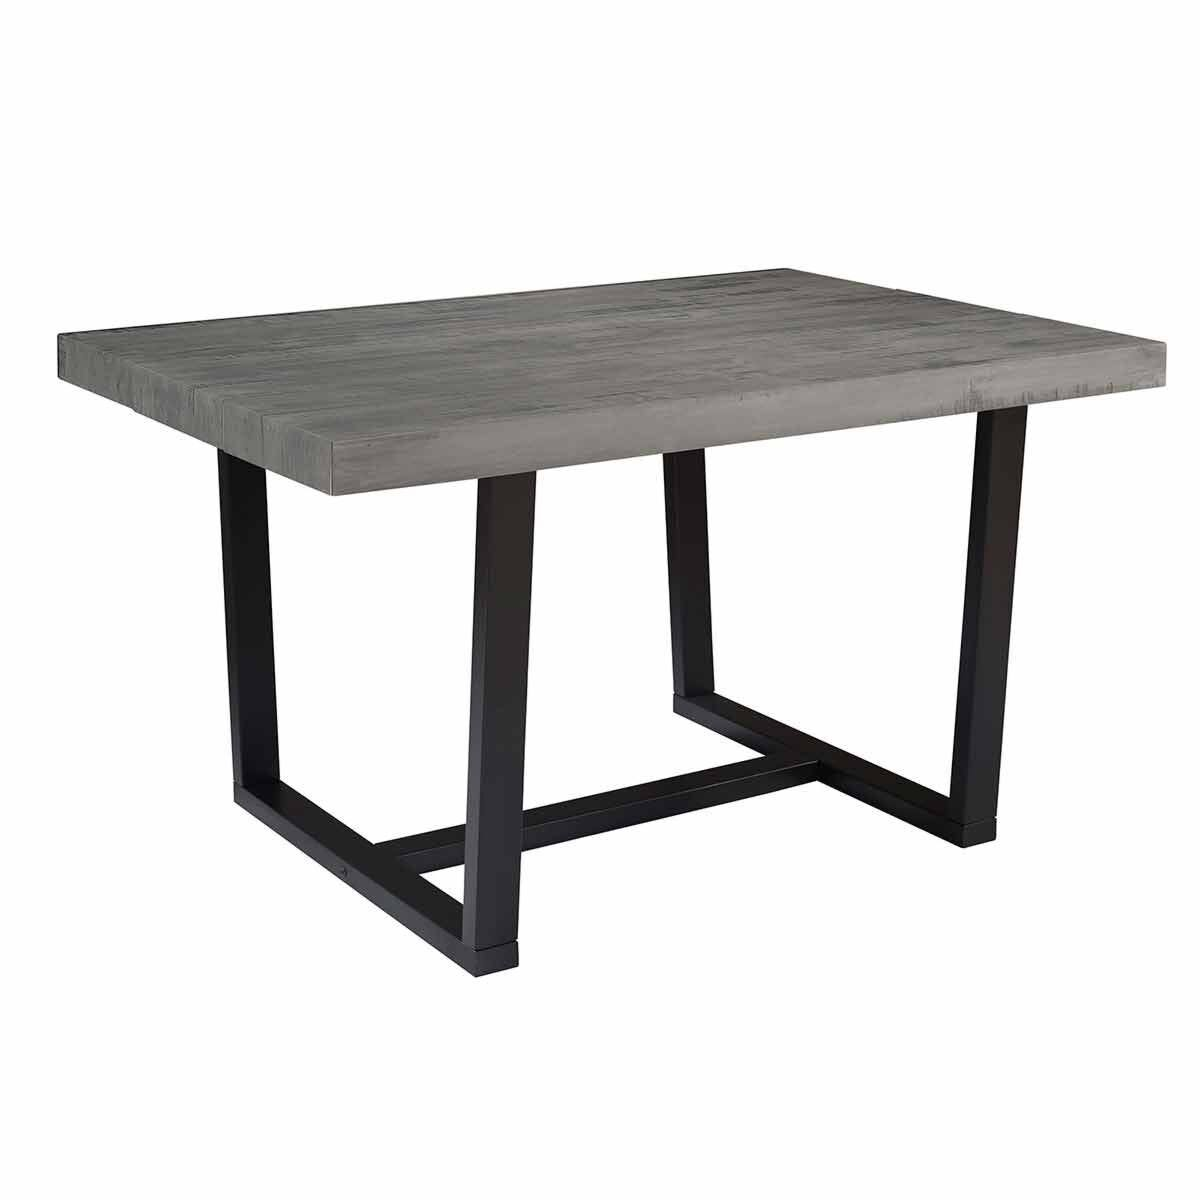 Rimini Distressed Solid Wood Dining Table